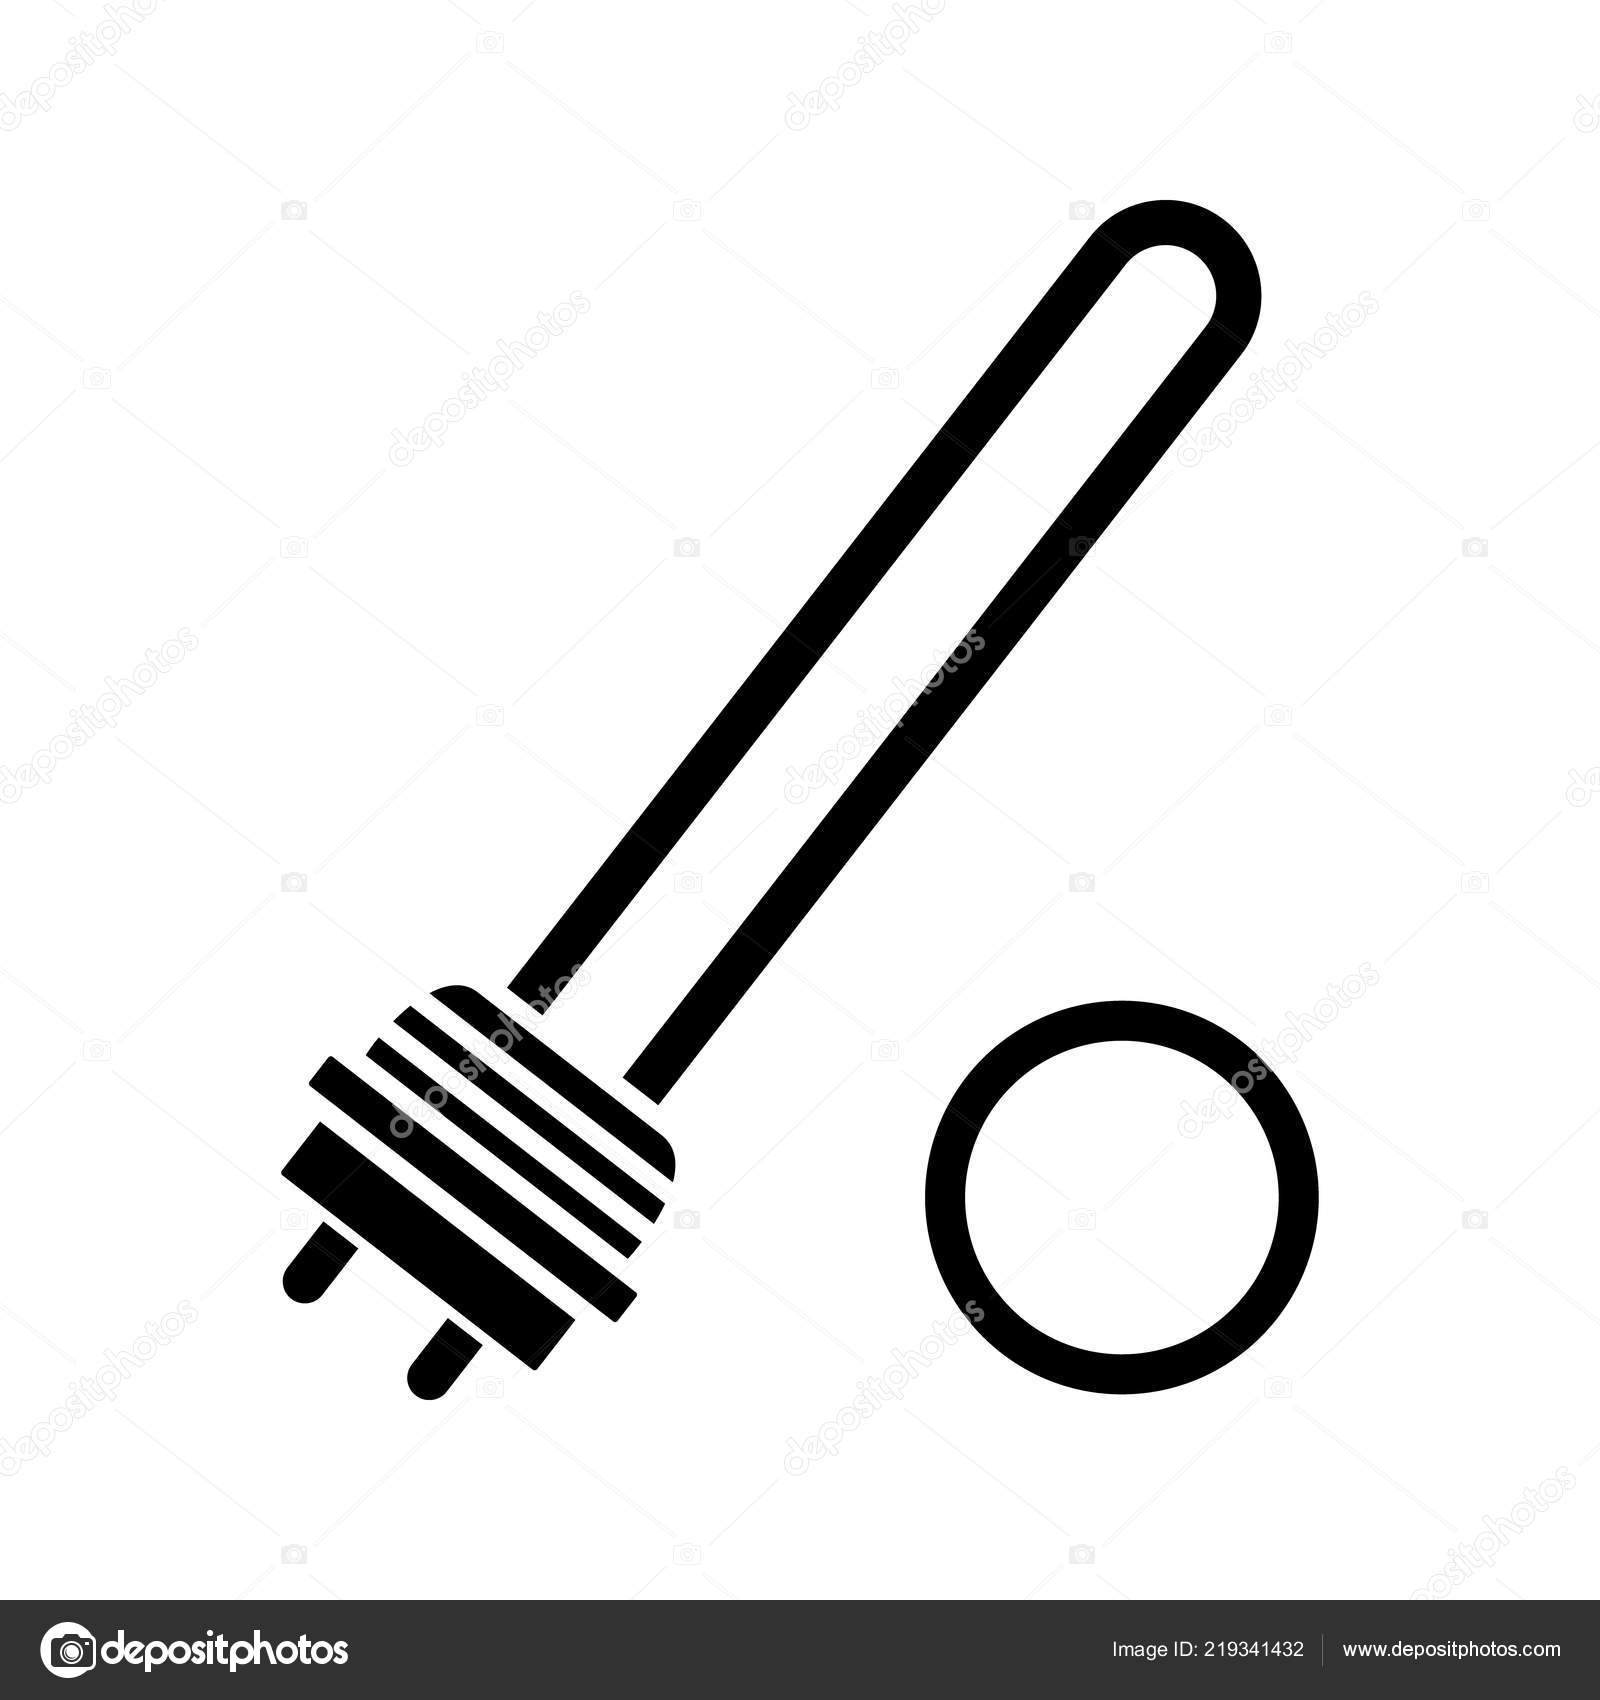 Symbol Of Immersion Heater